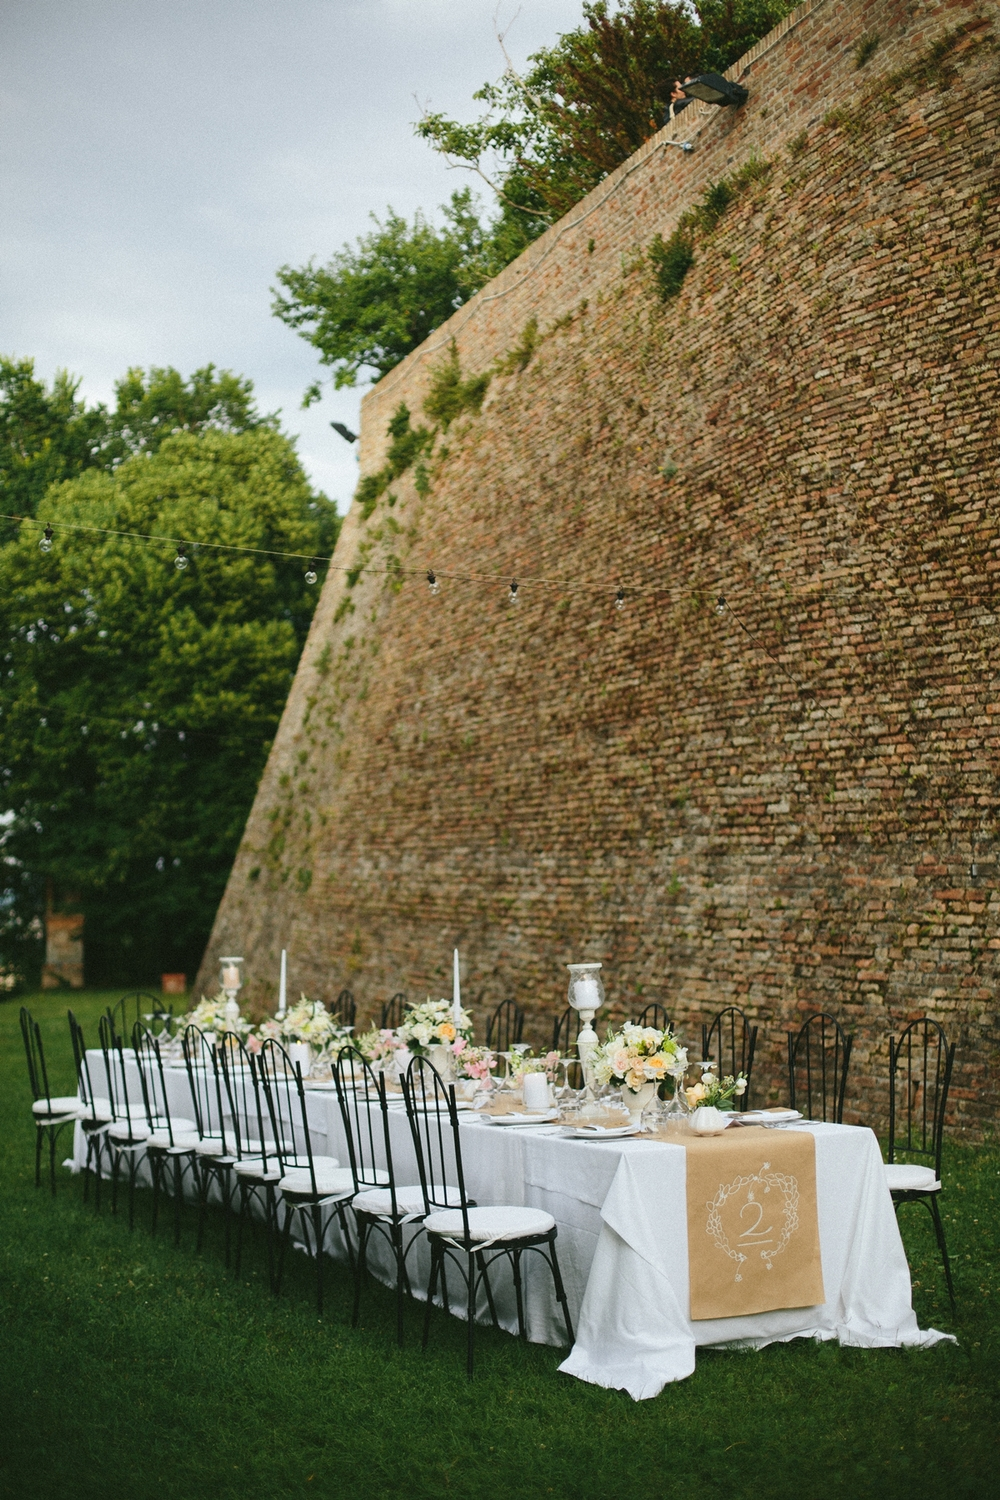 wedding-table-n-2-montegridolfo.jpg